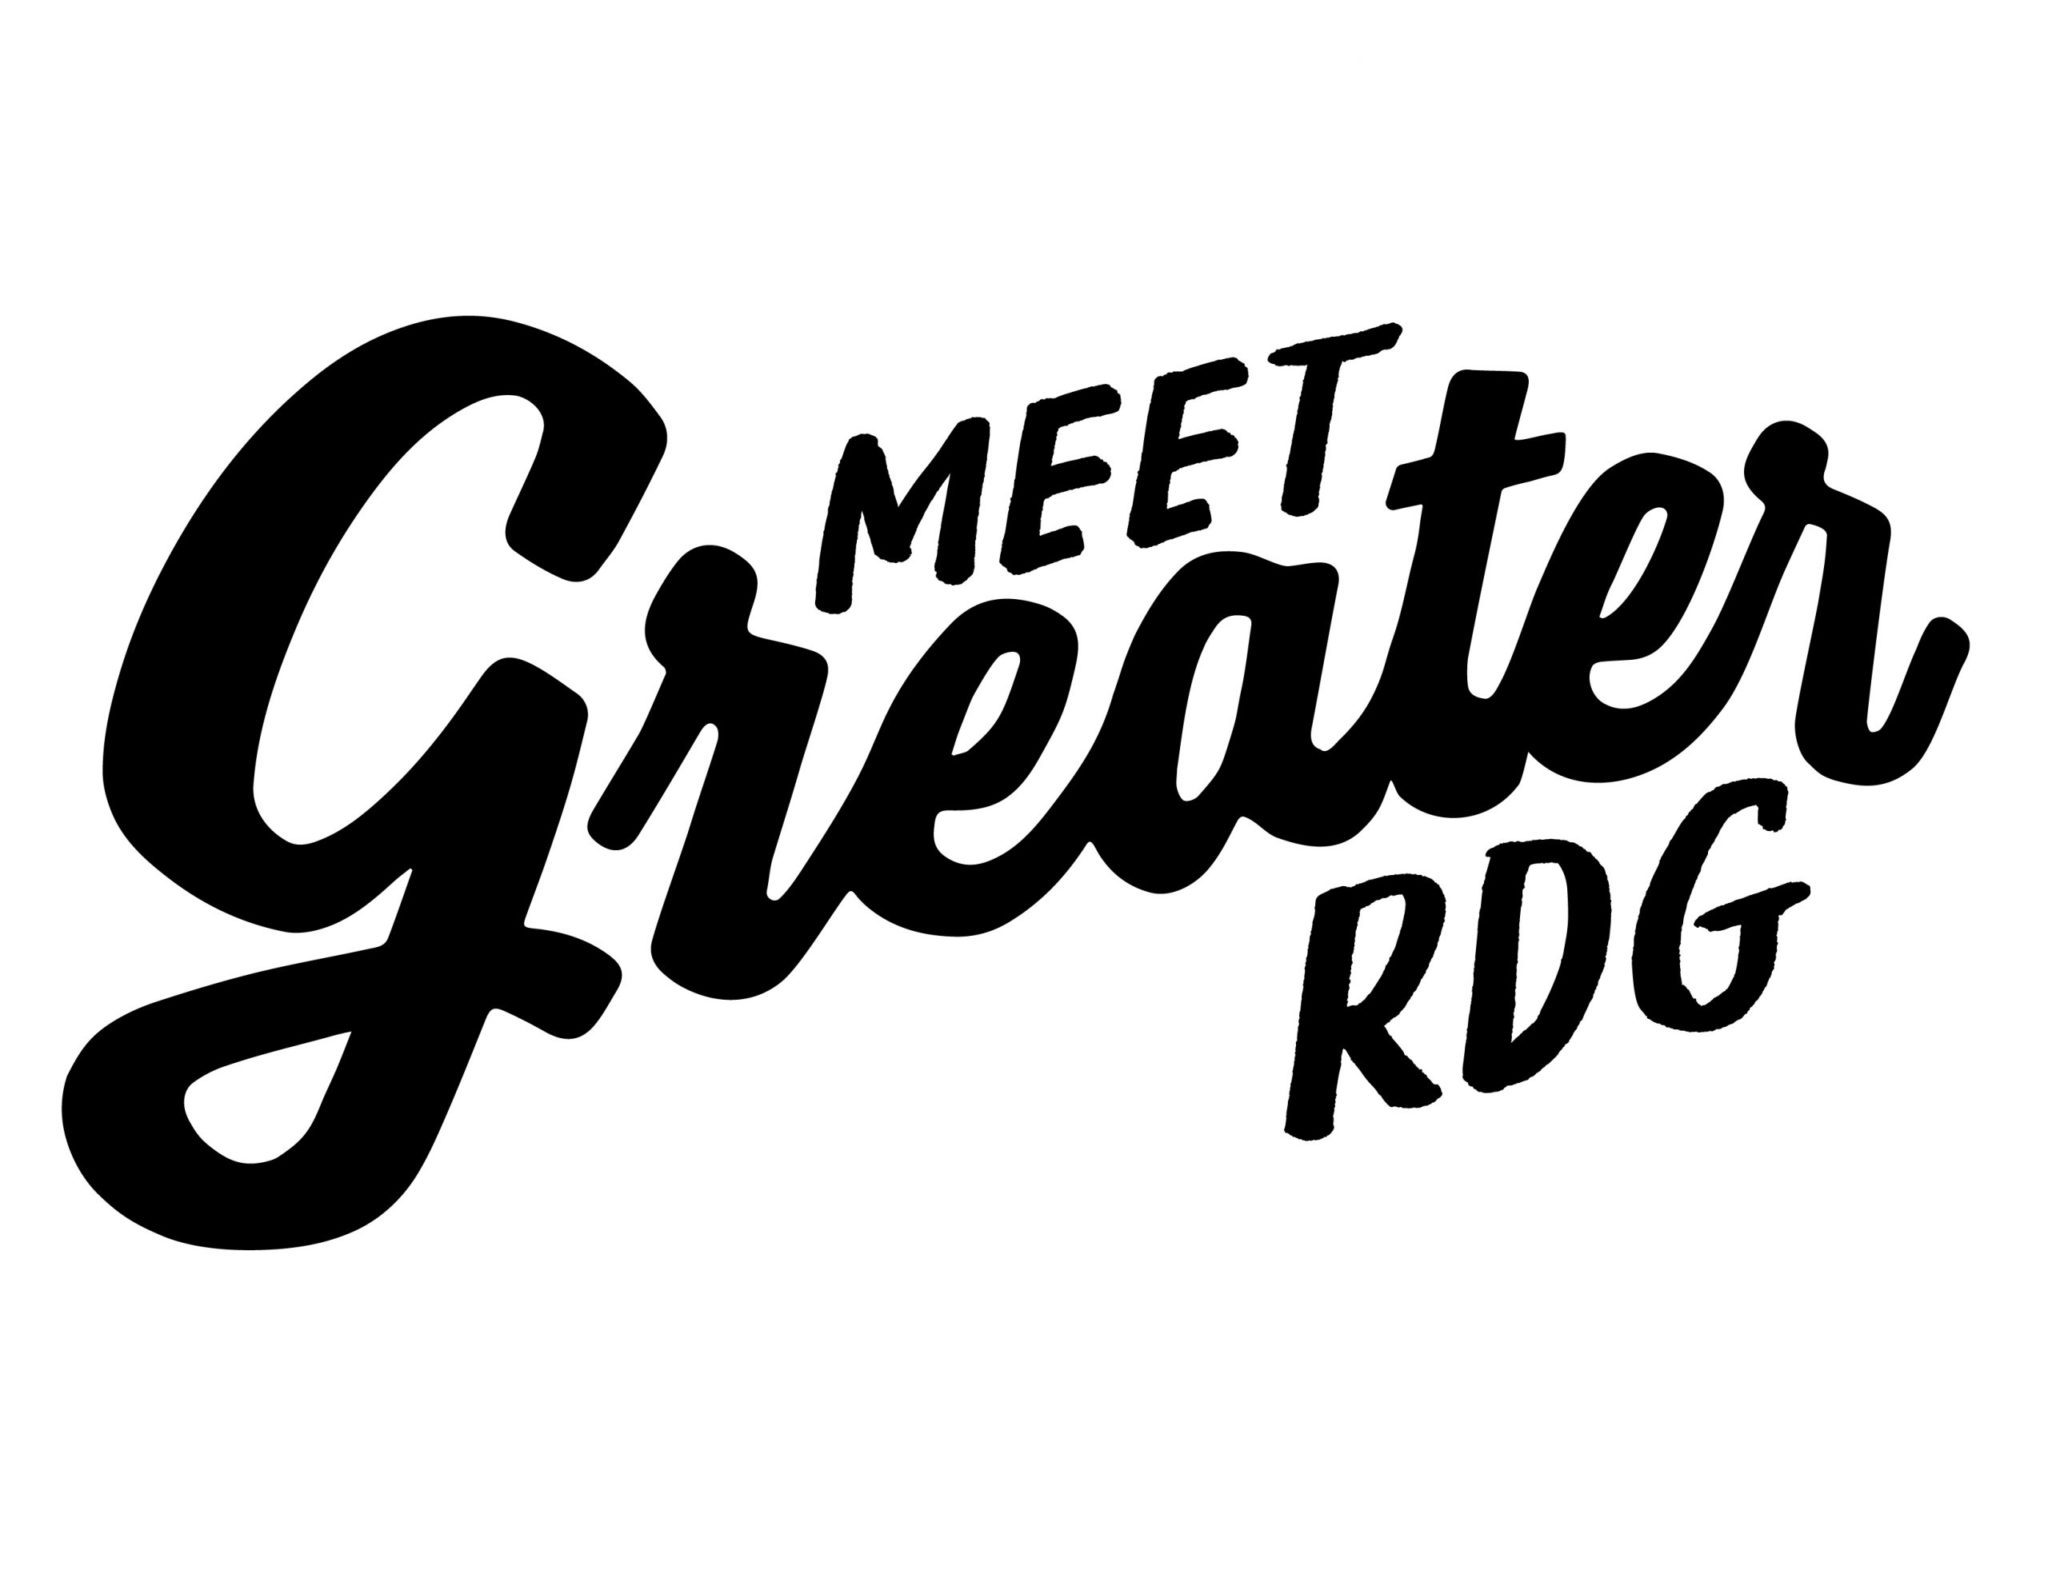 meet greater reading organization logo